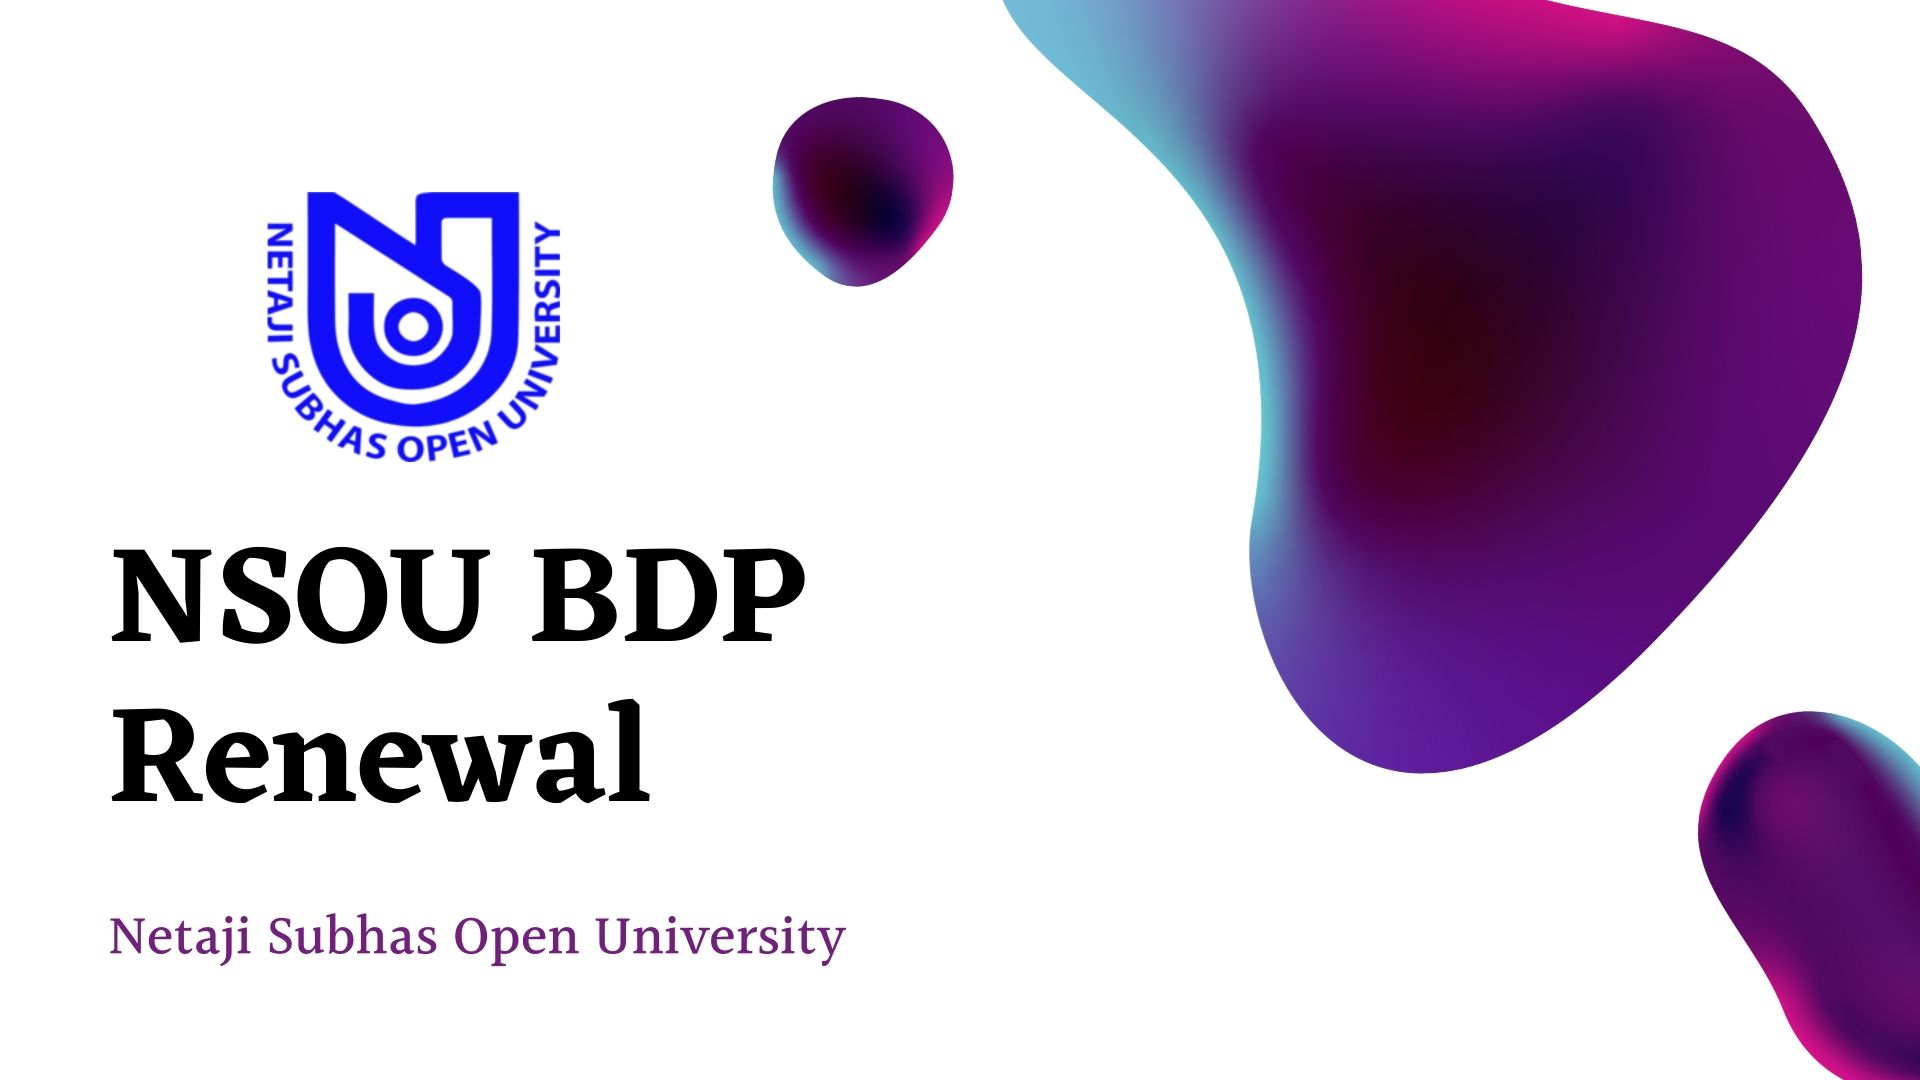 NSOU BDP Renewal 2020 Application